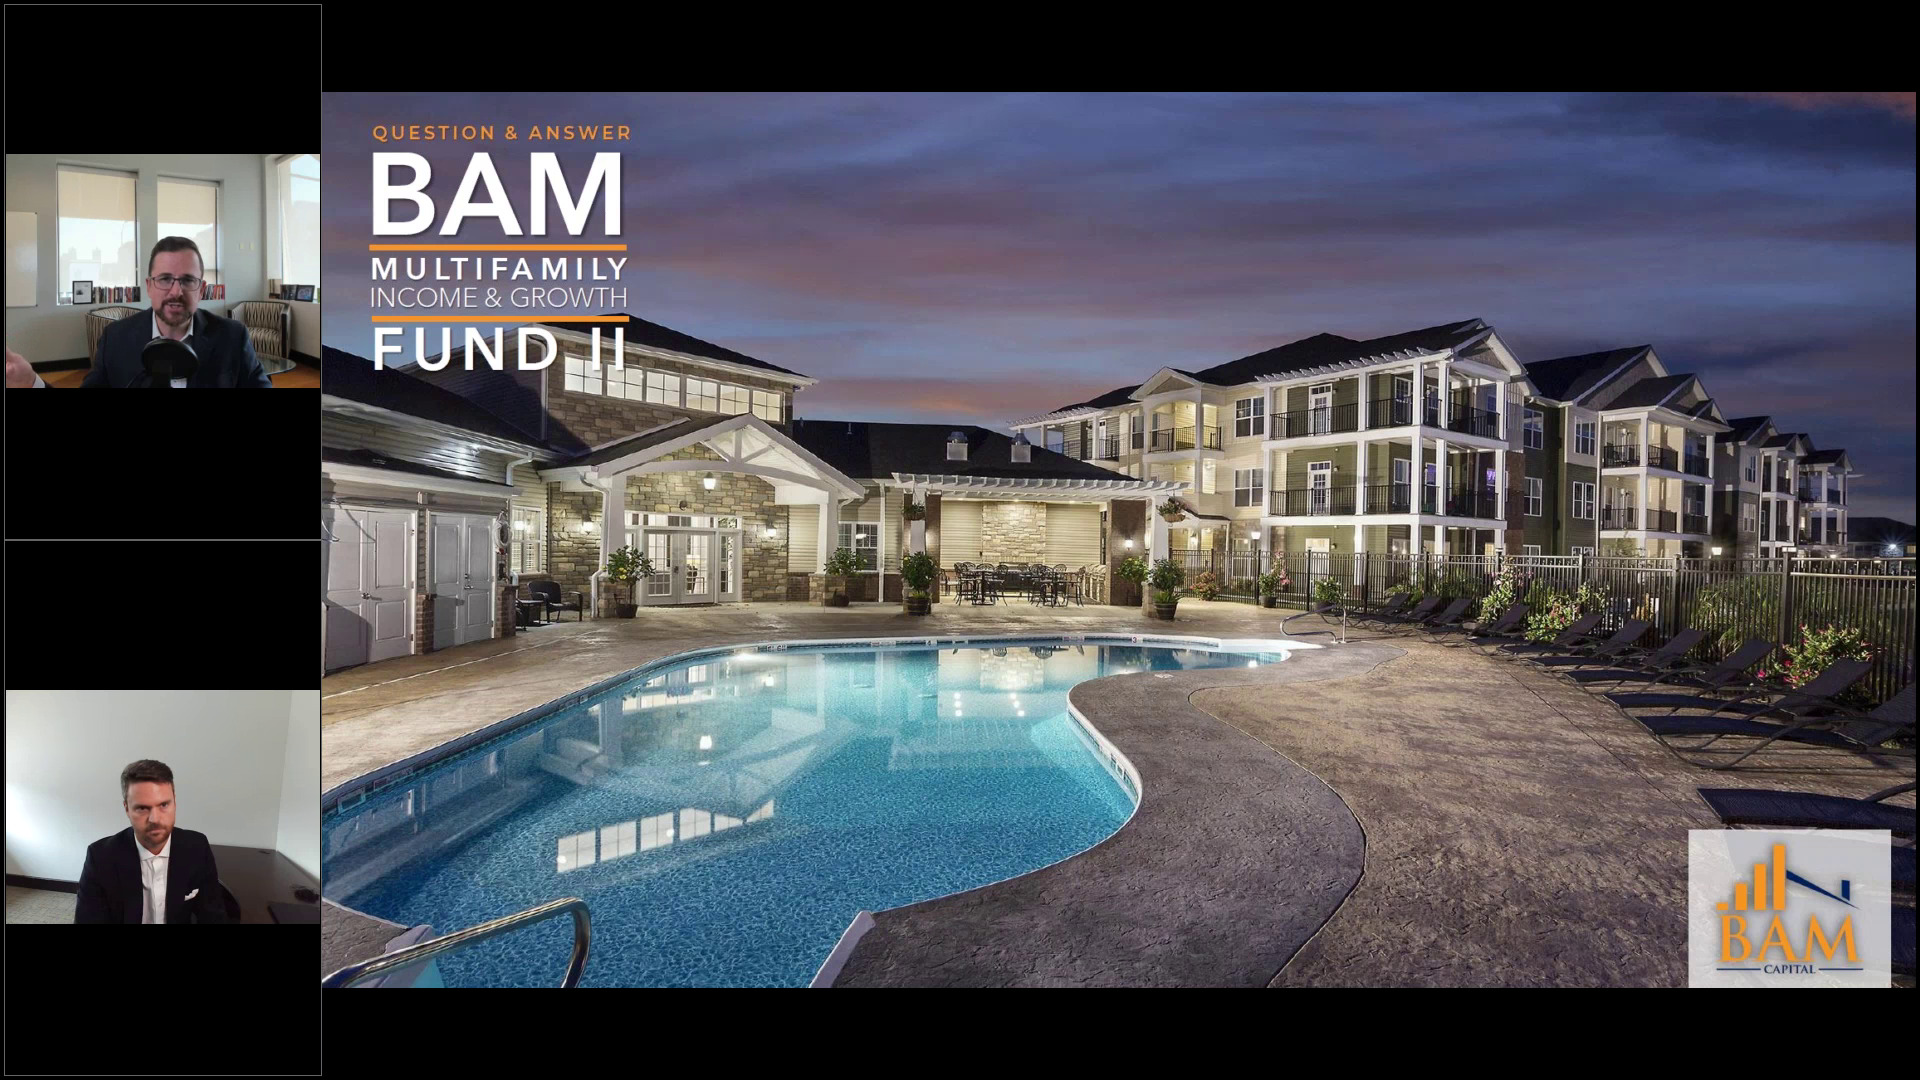 Investment Video - BAM Multifamily Growth & Income Fund II - Series A